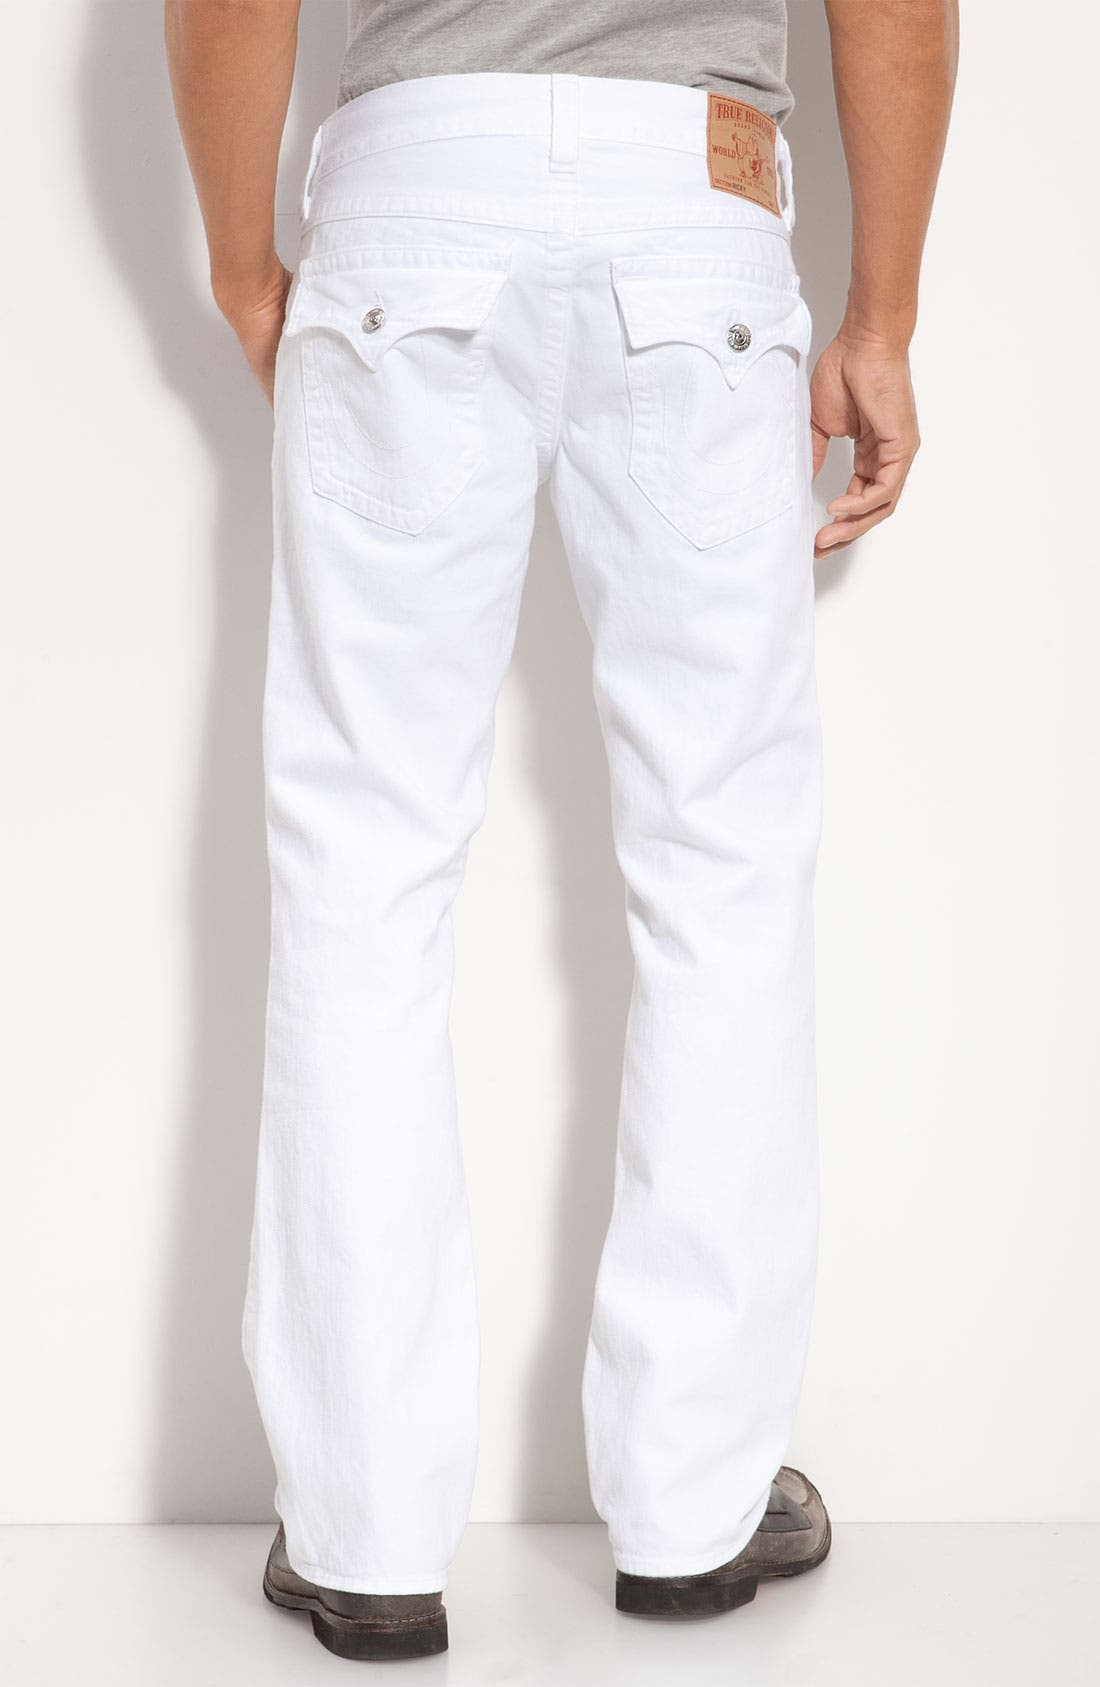 Main Image - True Religion Brand Jeans 'Ricky' Relaxed Straight Leg Jeans (Optic Rinse)